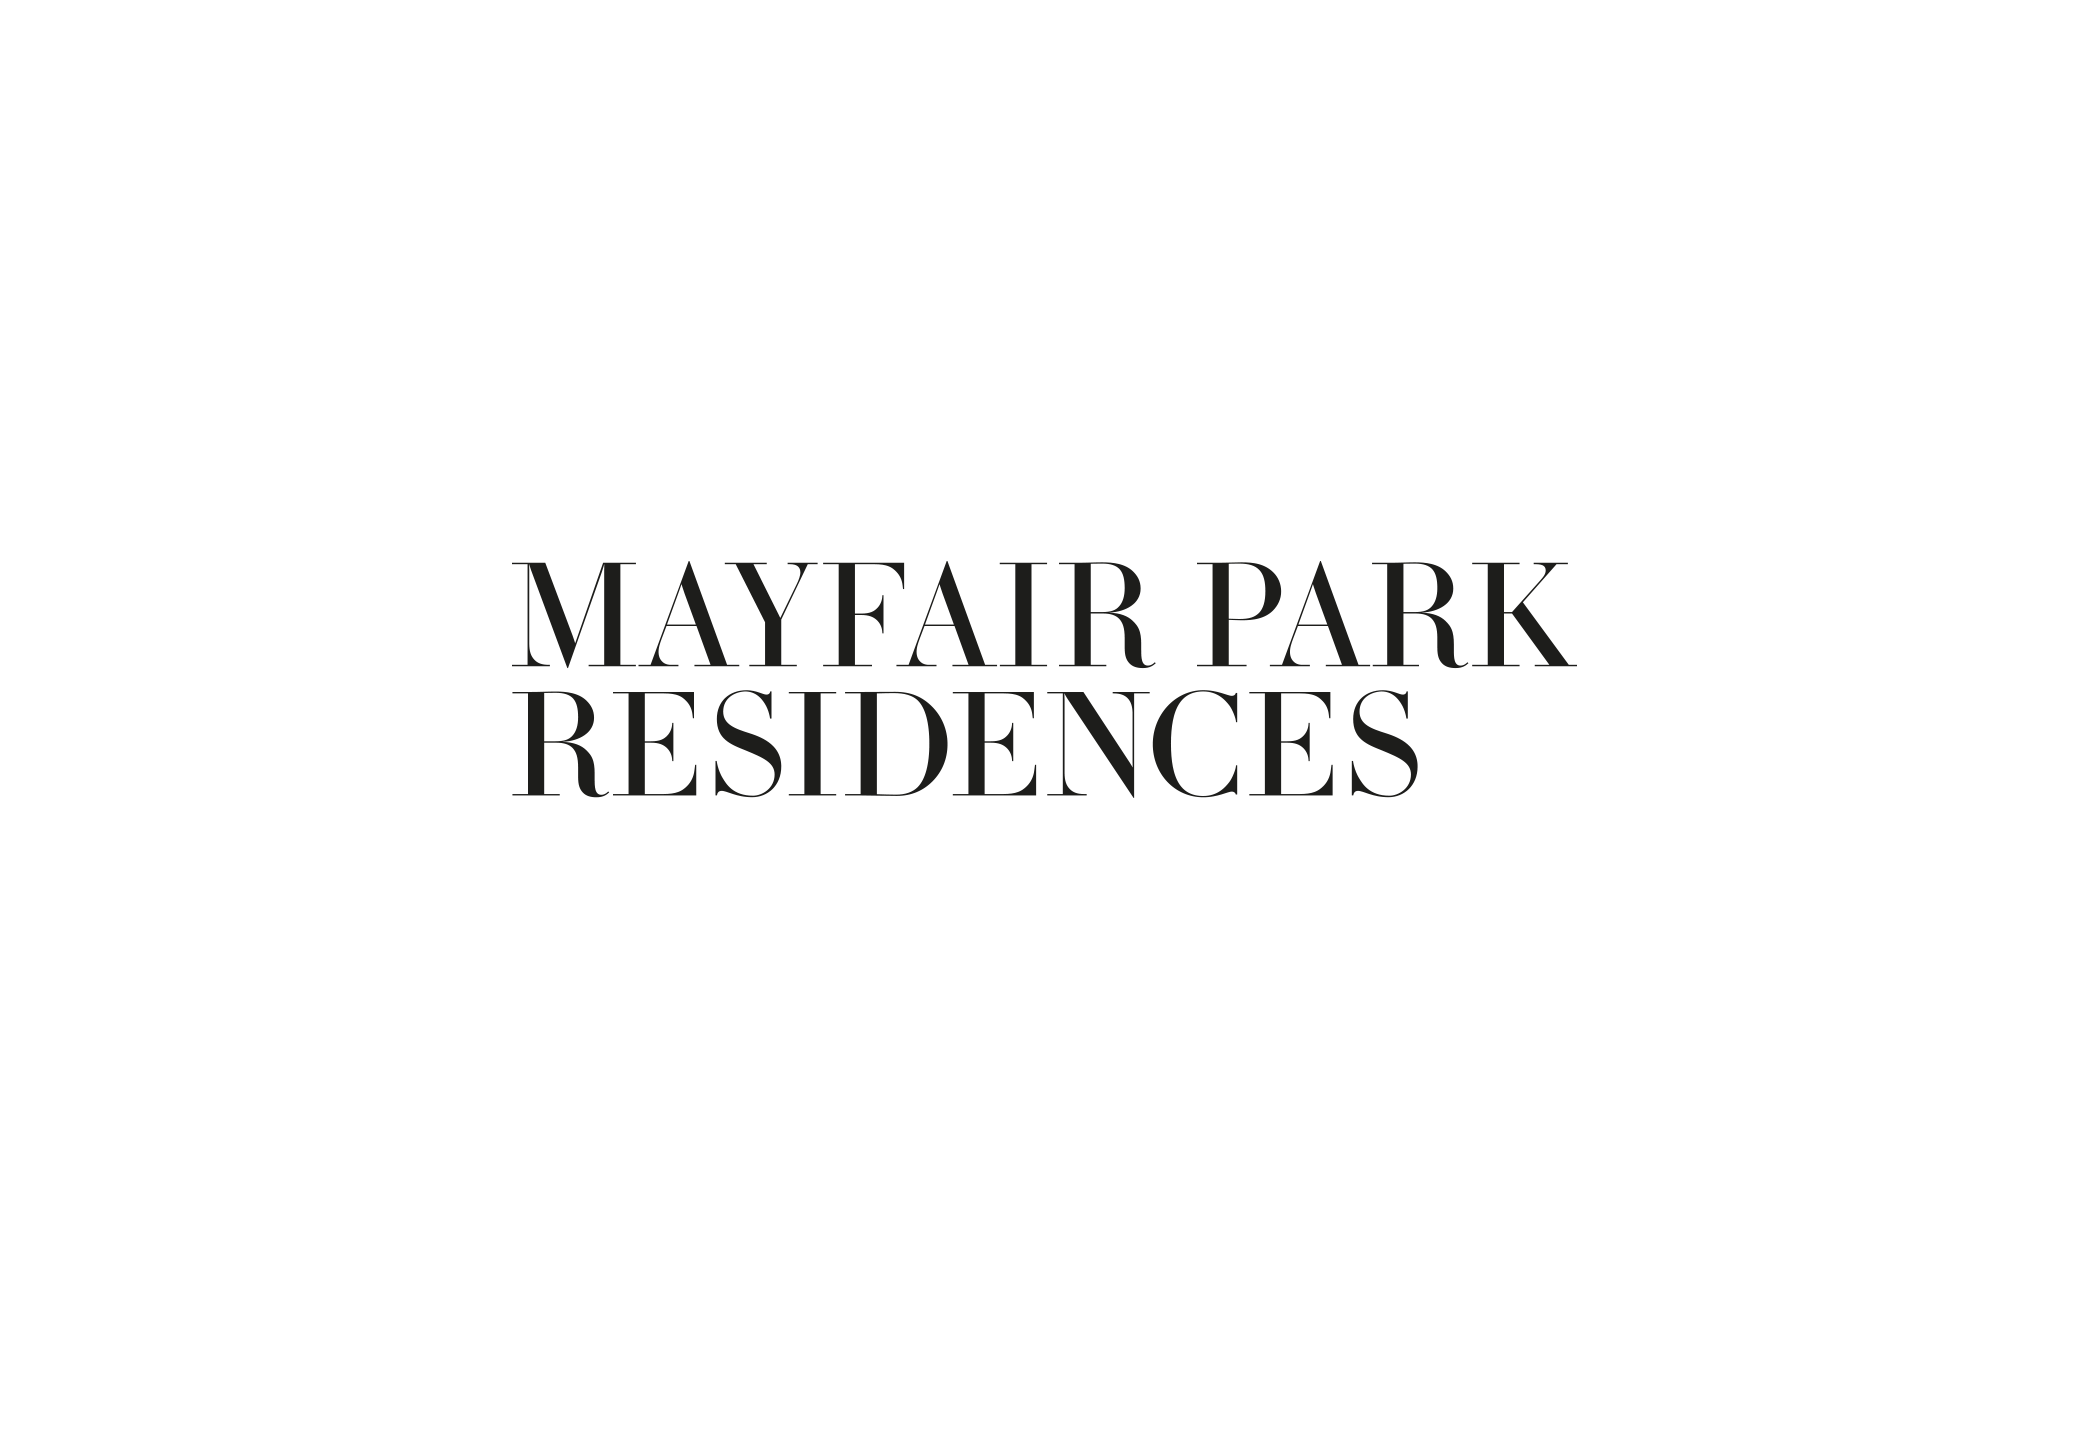 Identity and brand book for Mayfair Park Residences